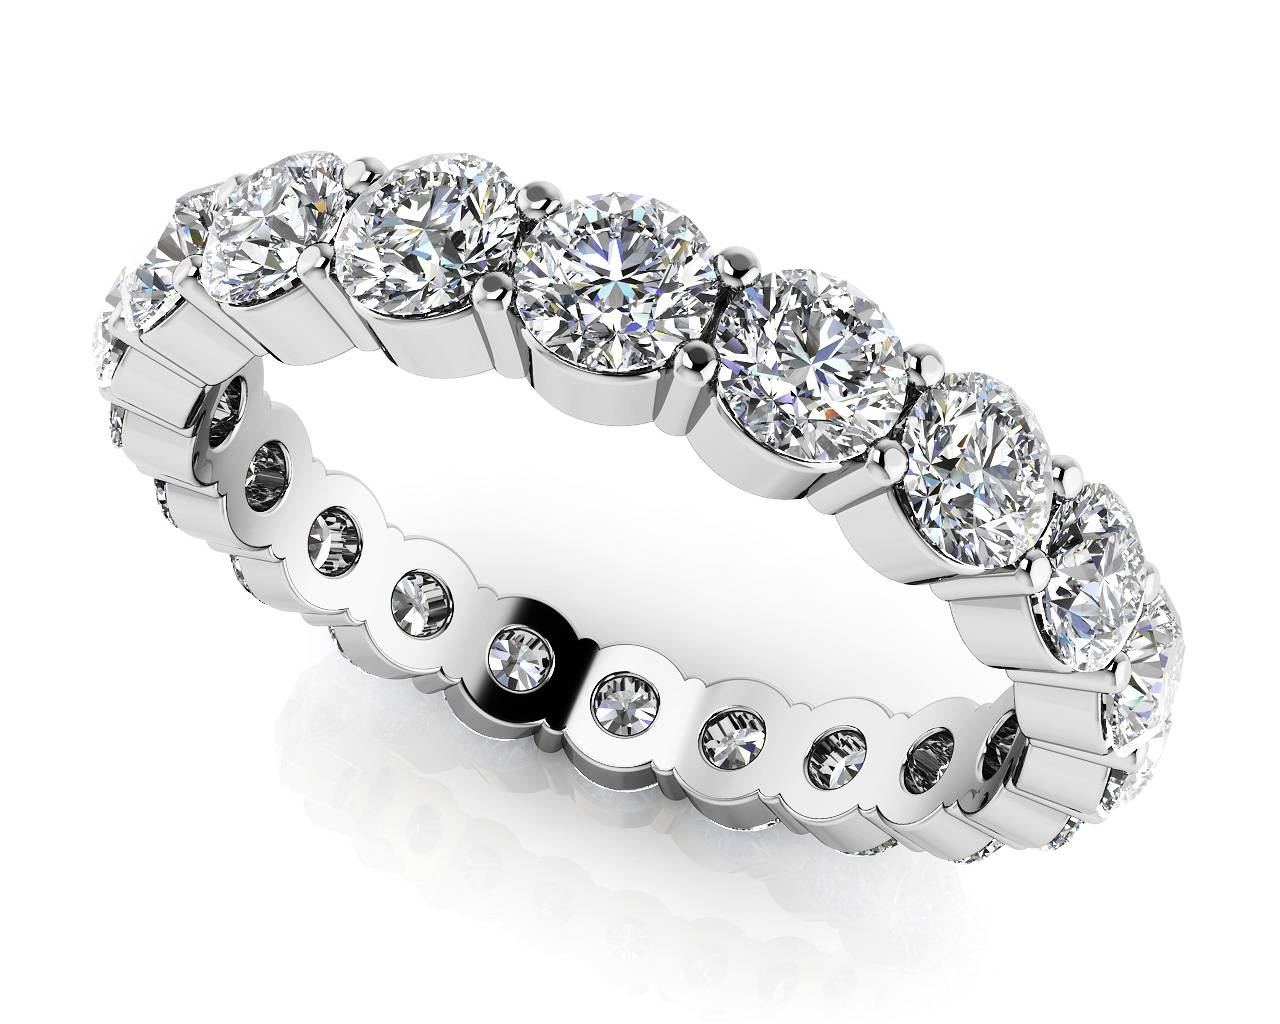 Design Your Own Diamond Anniversary Ring & Eternity Ring Pertaining To Recent 25 Year Wedding Anniversary Rings (View 10 of 25)